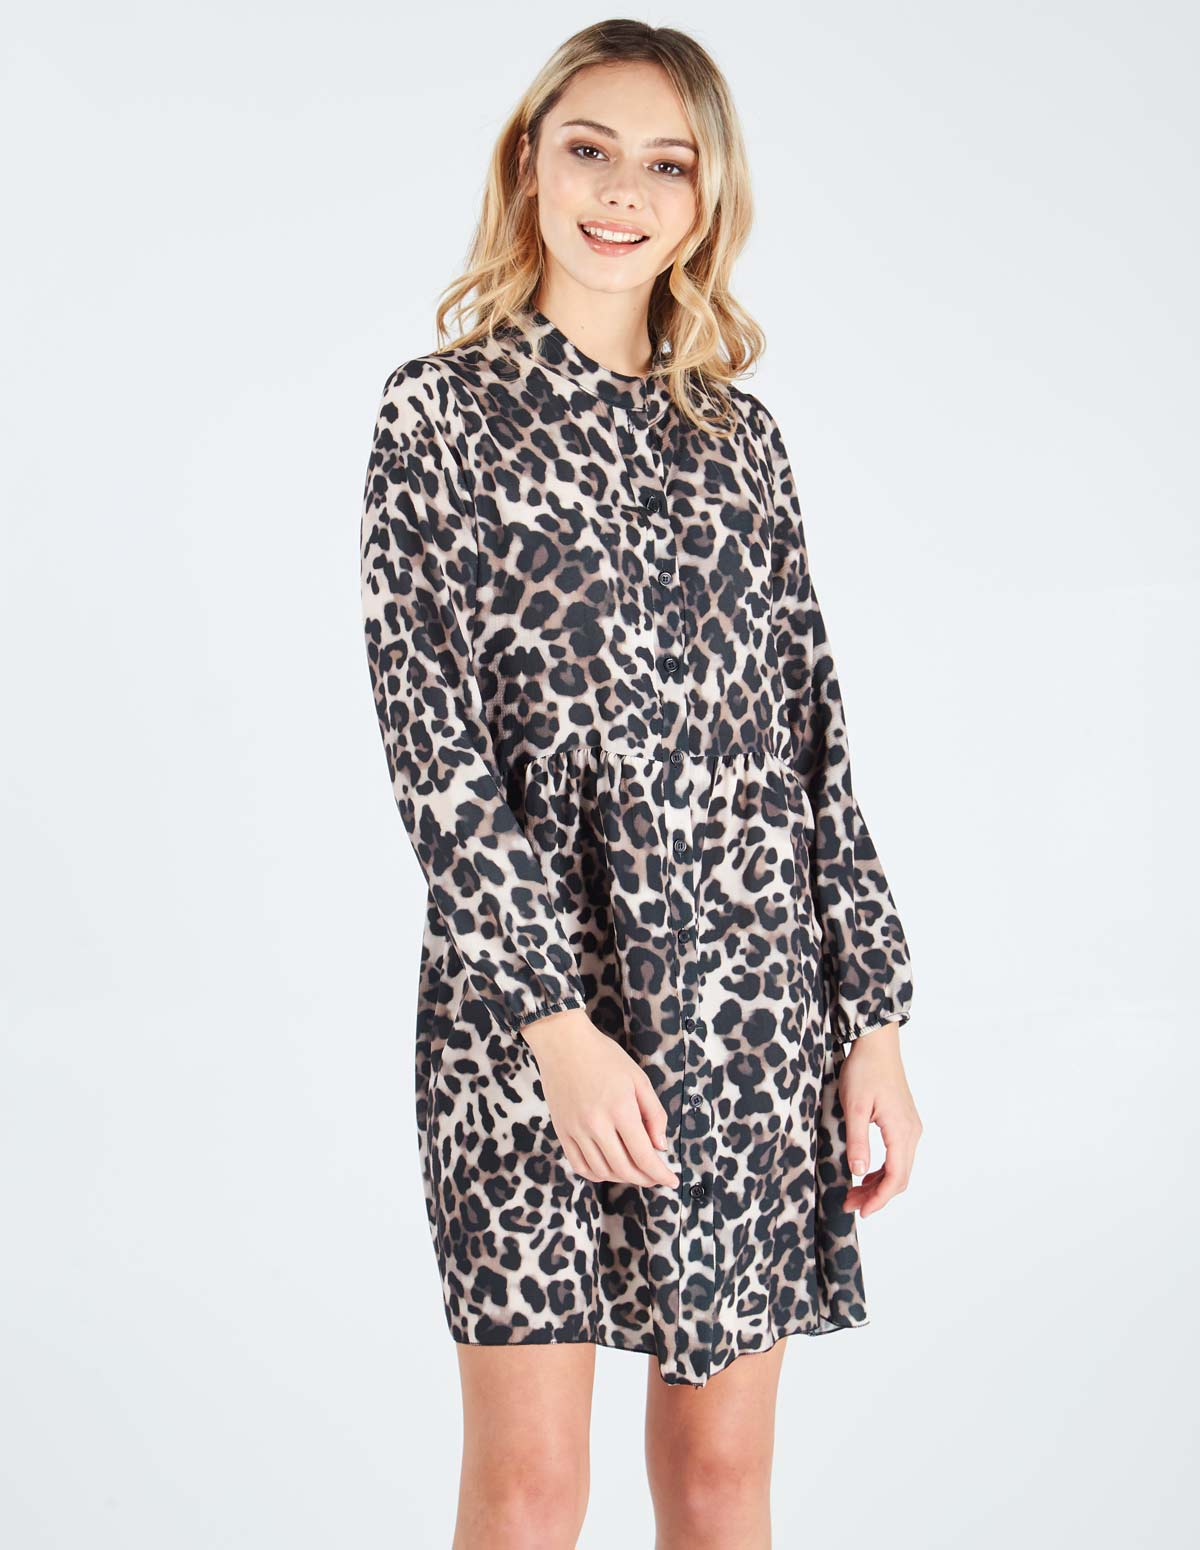 96cc2a37ca56 NICOLE - Front Buttoned Long Sleeve Leopard Print Dress